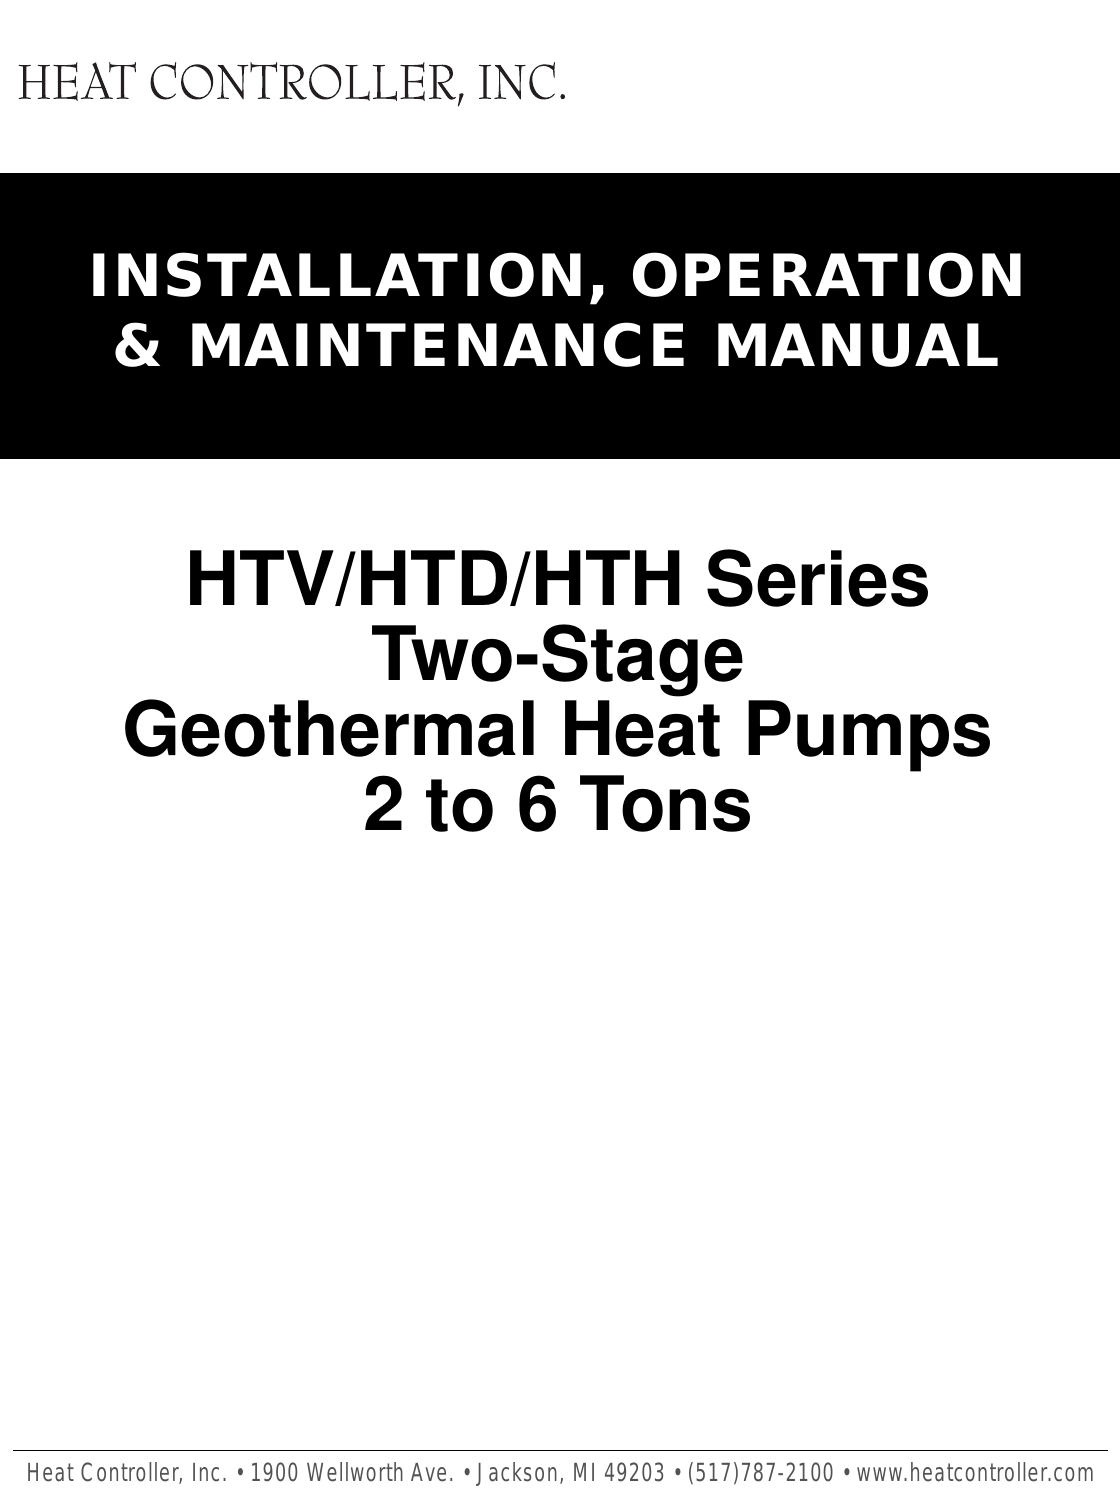 Heat Controller Geomax 2 Two Stage Geothermal Quick Start